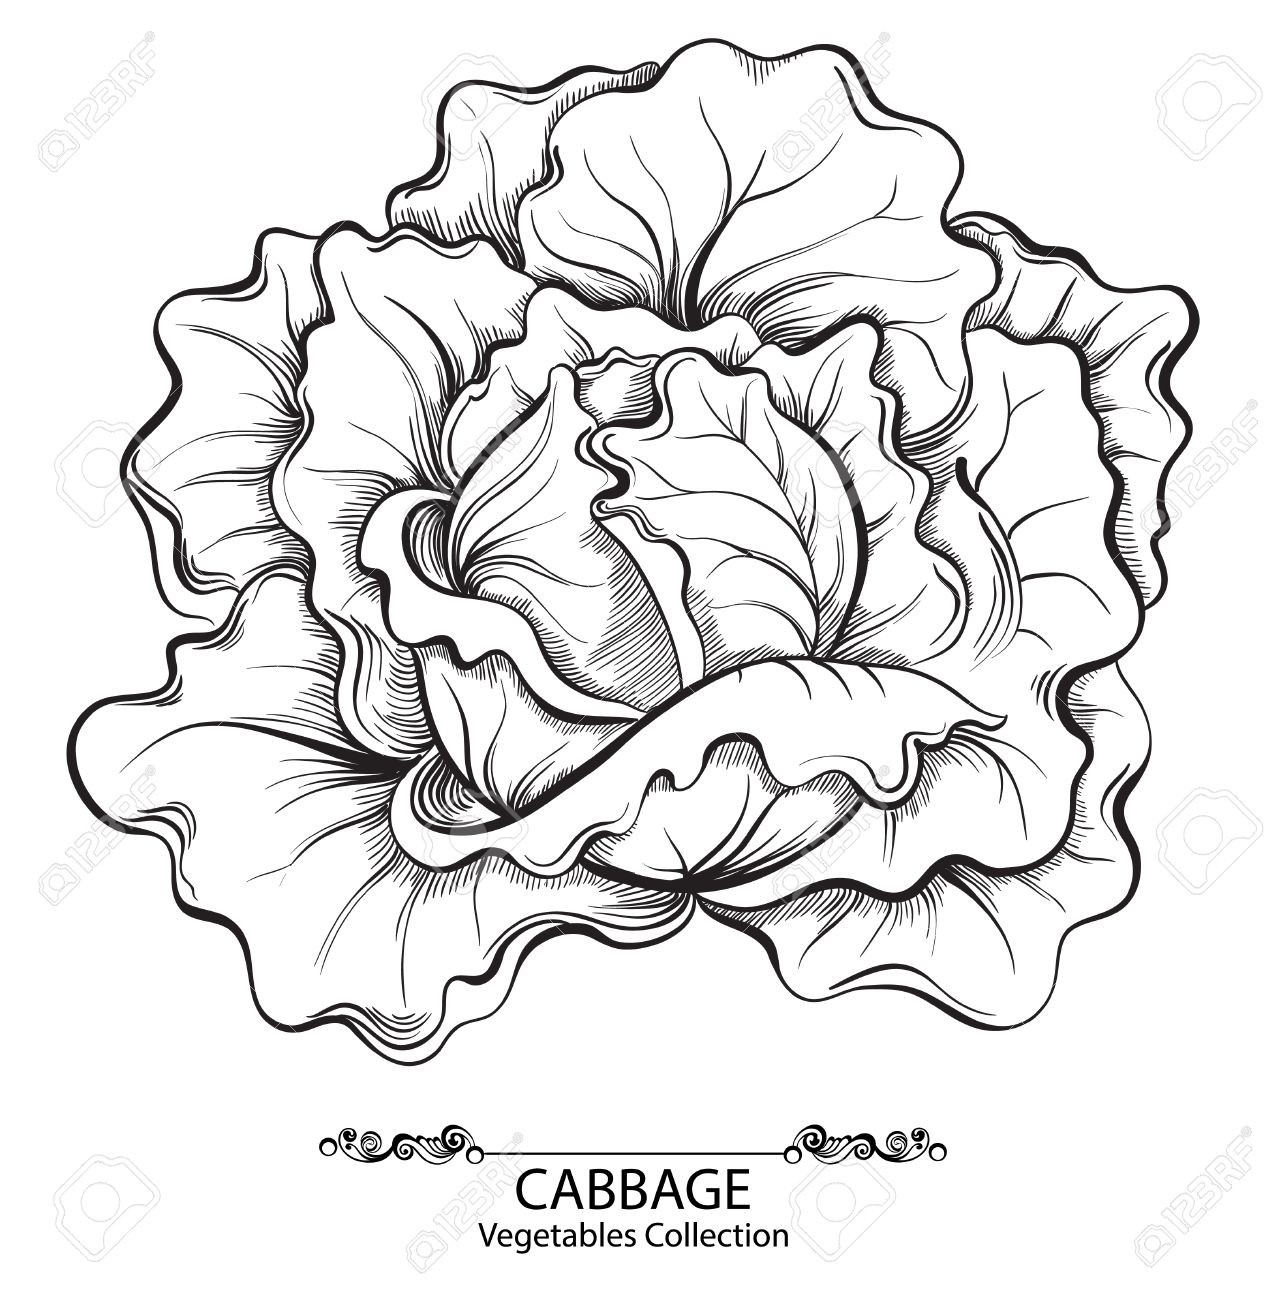 Cabbage. Vector hand drawn vegetables isolated on white background - 34923858